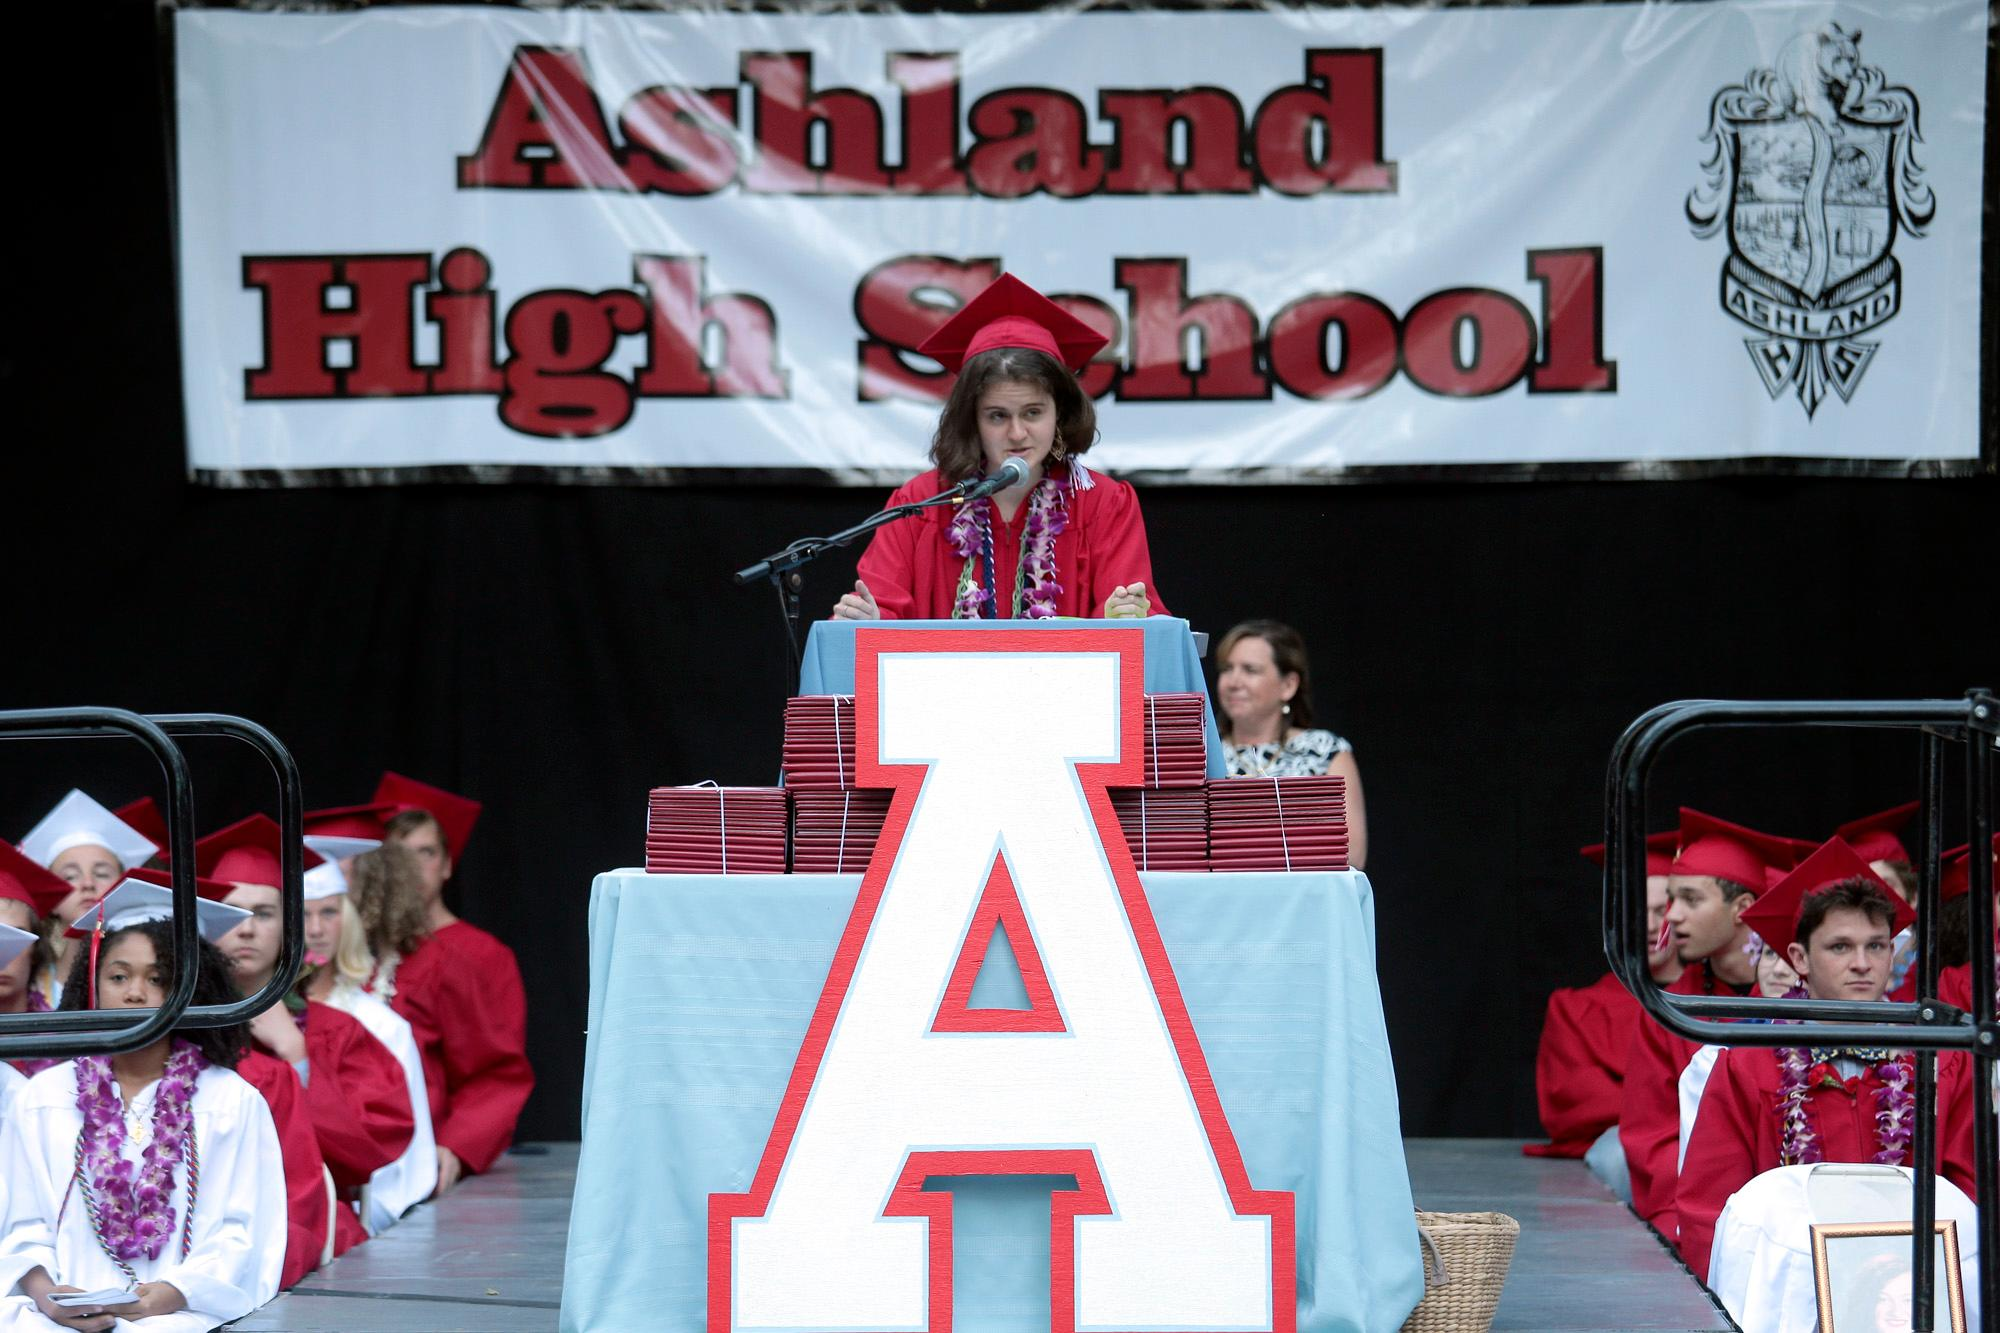 ASB Vice President Emily Belcastro introducing the Keynote Speaker, Bill Rauch, during the Ashland High Class of 2018 Commencement Ceremony at Lithia Park.   [ / PHOTO BY:  LARRY STAUTH JR]